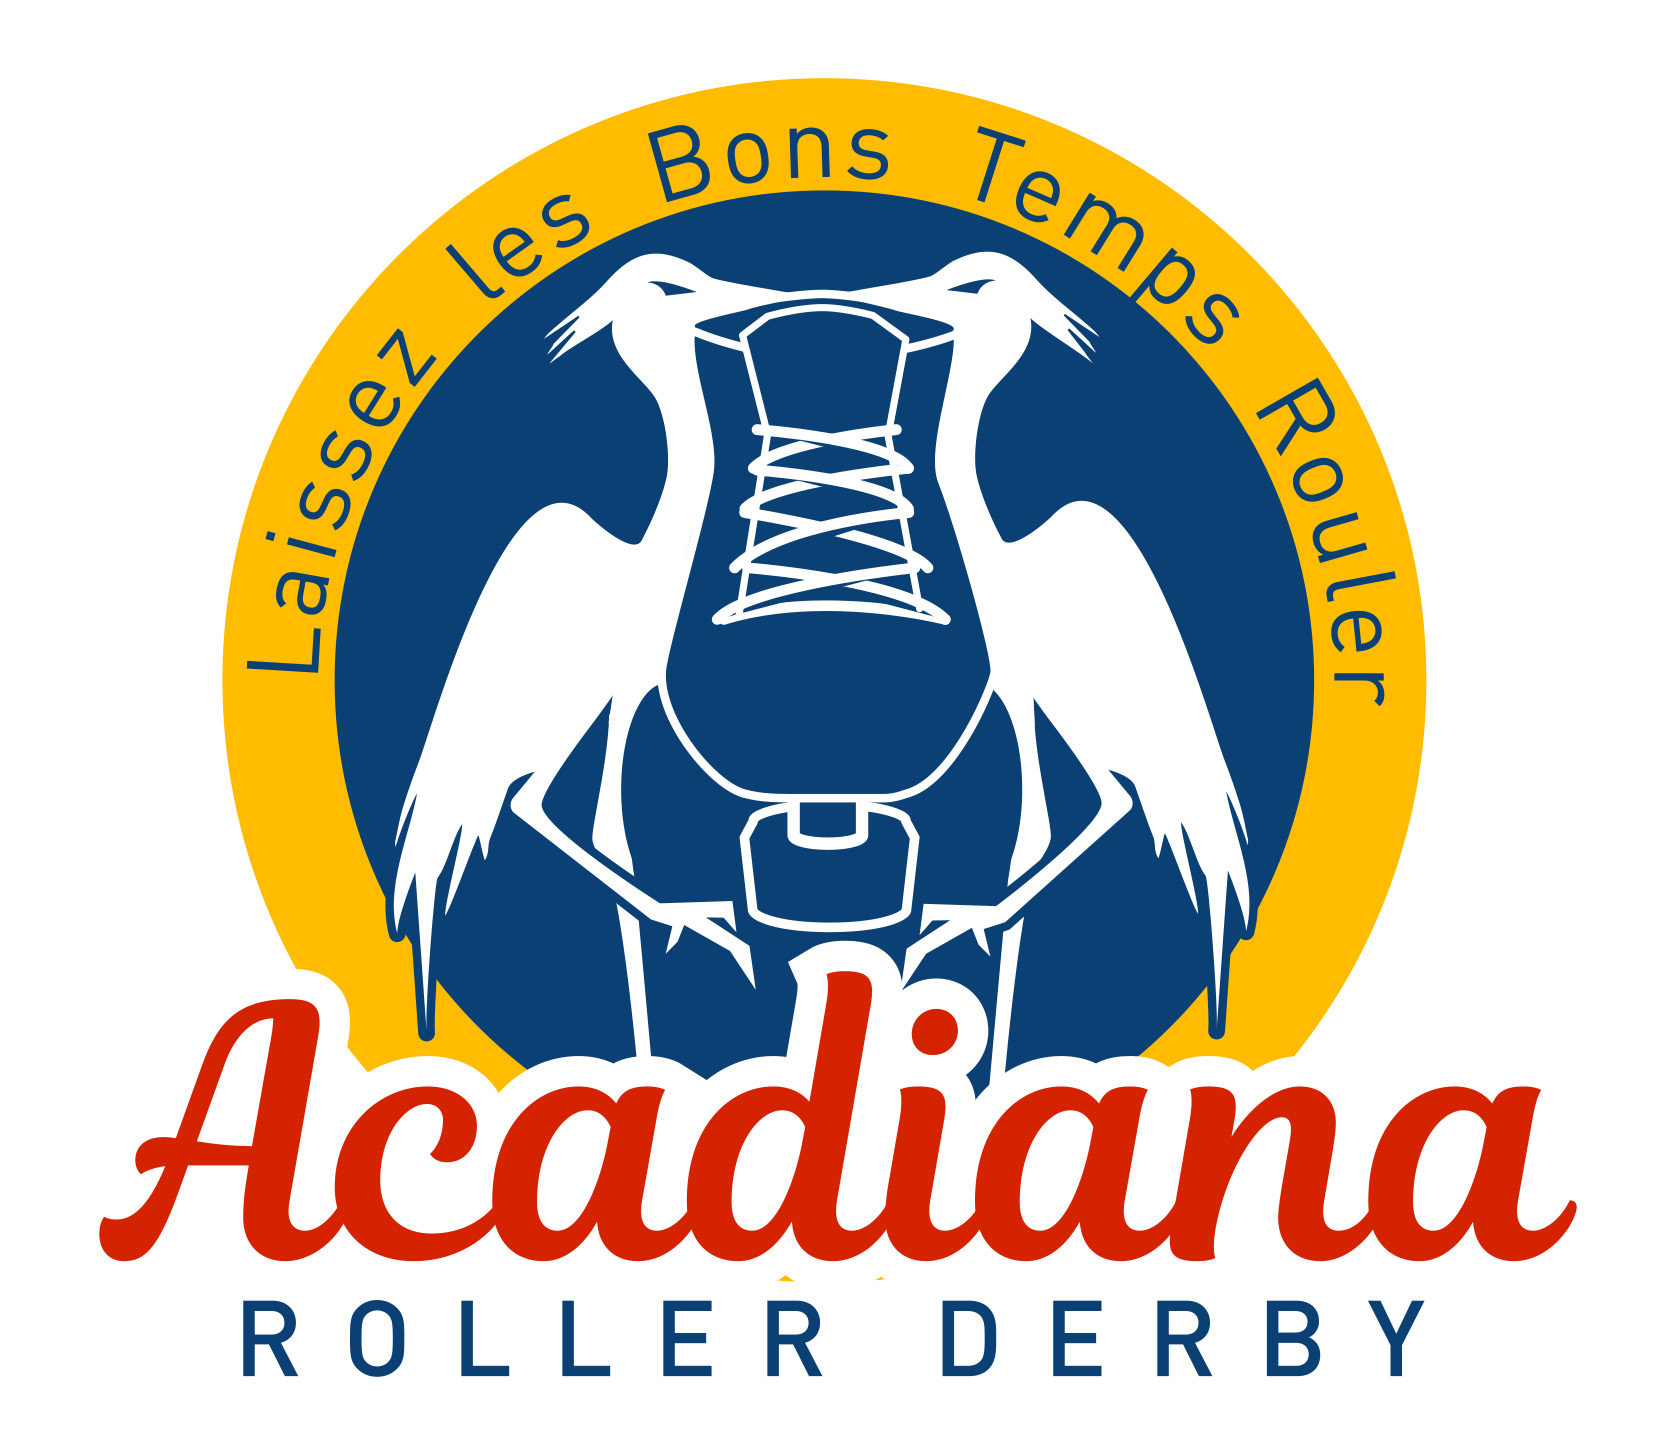 Acadiana 20roller 20derby 20logo 20  20color 20  20light 20bg 20  20primary 20lockup